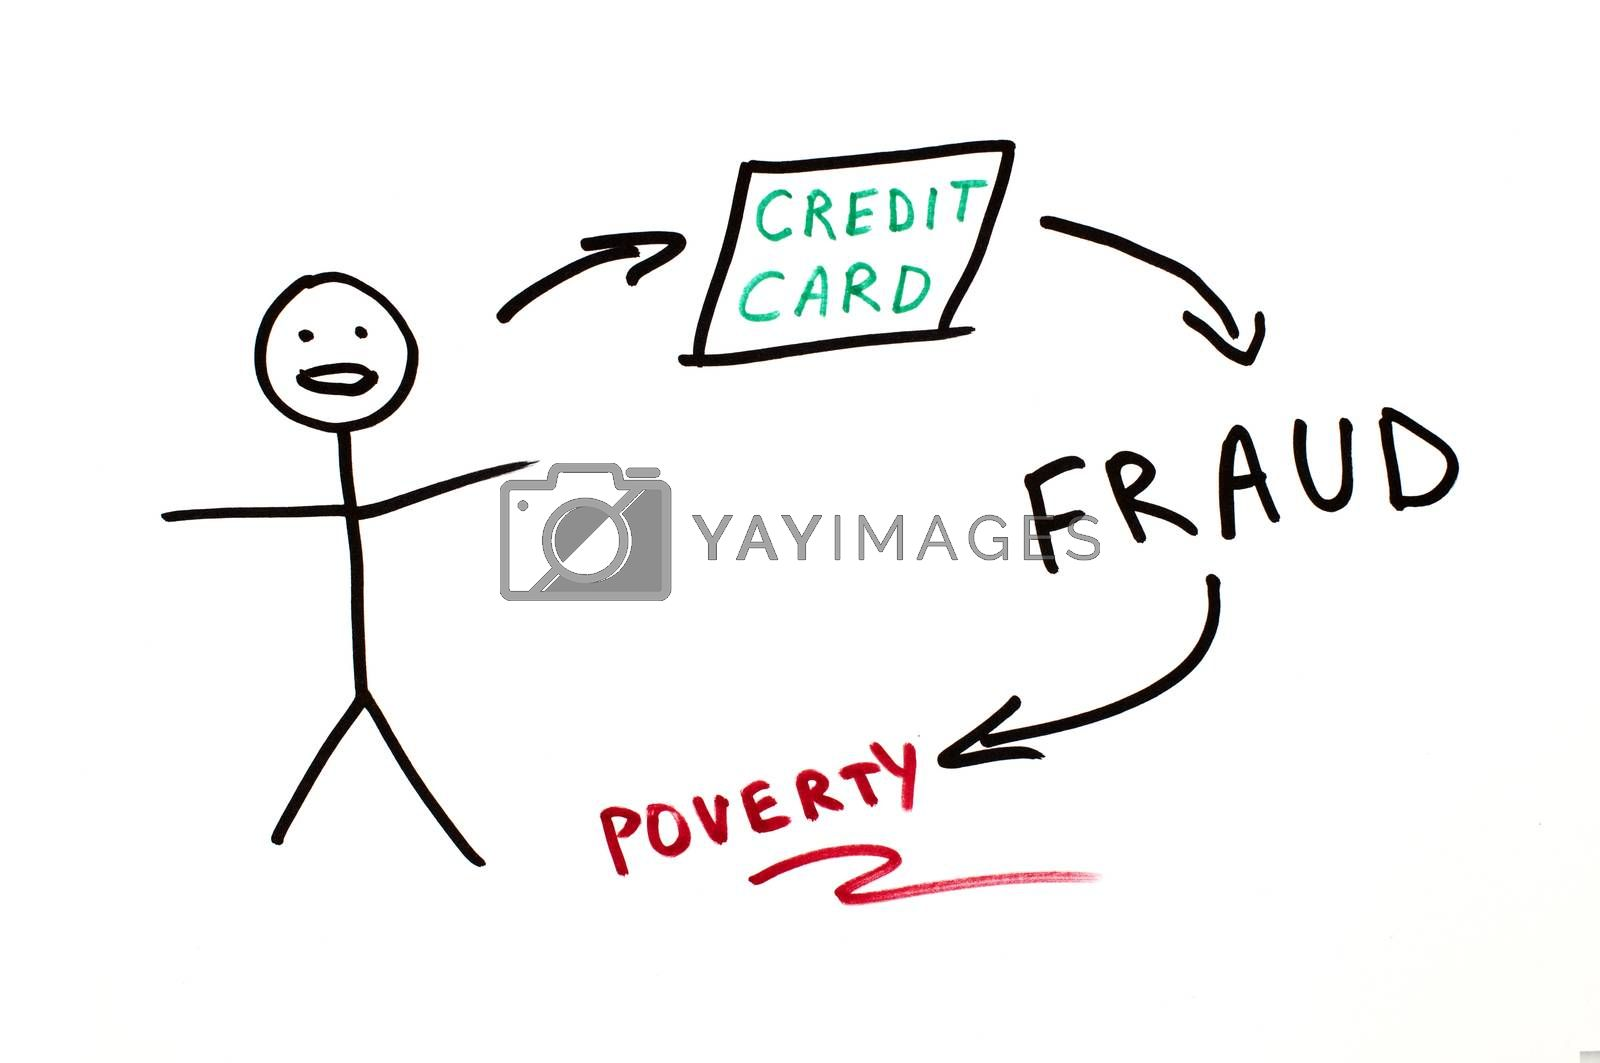 Credit card fraud conception illustration over white.